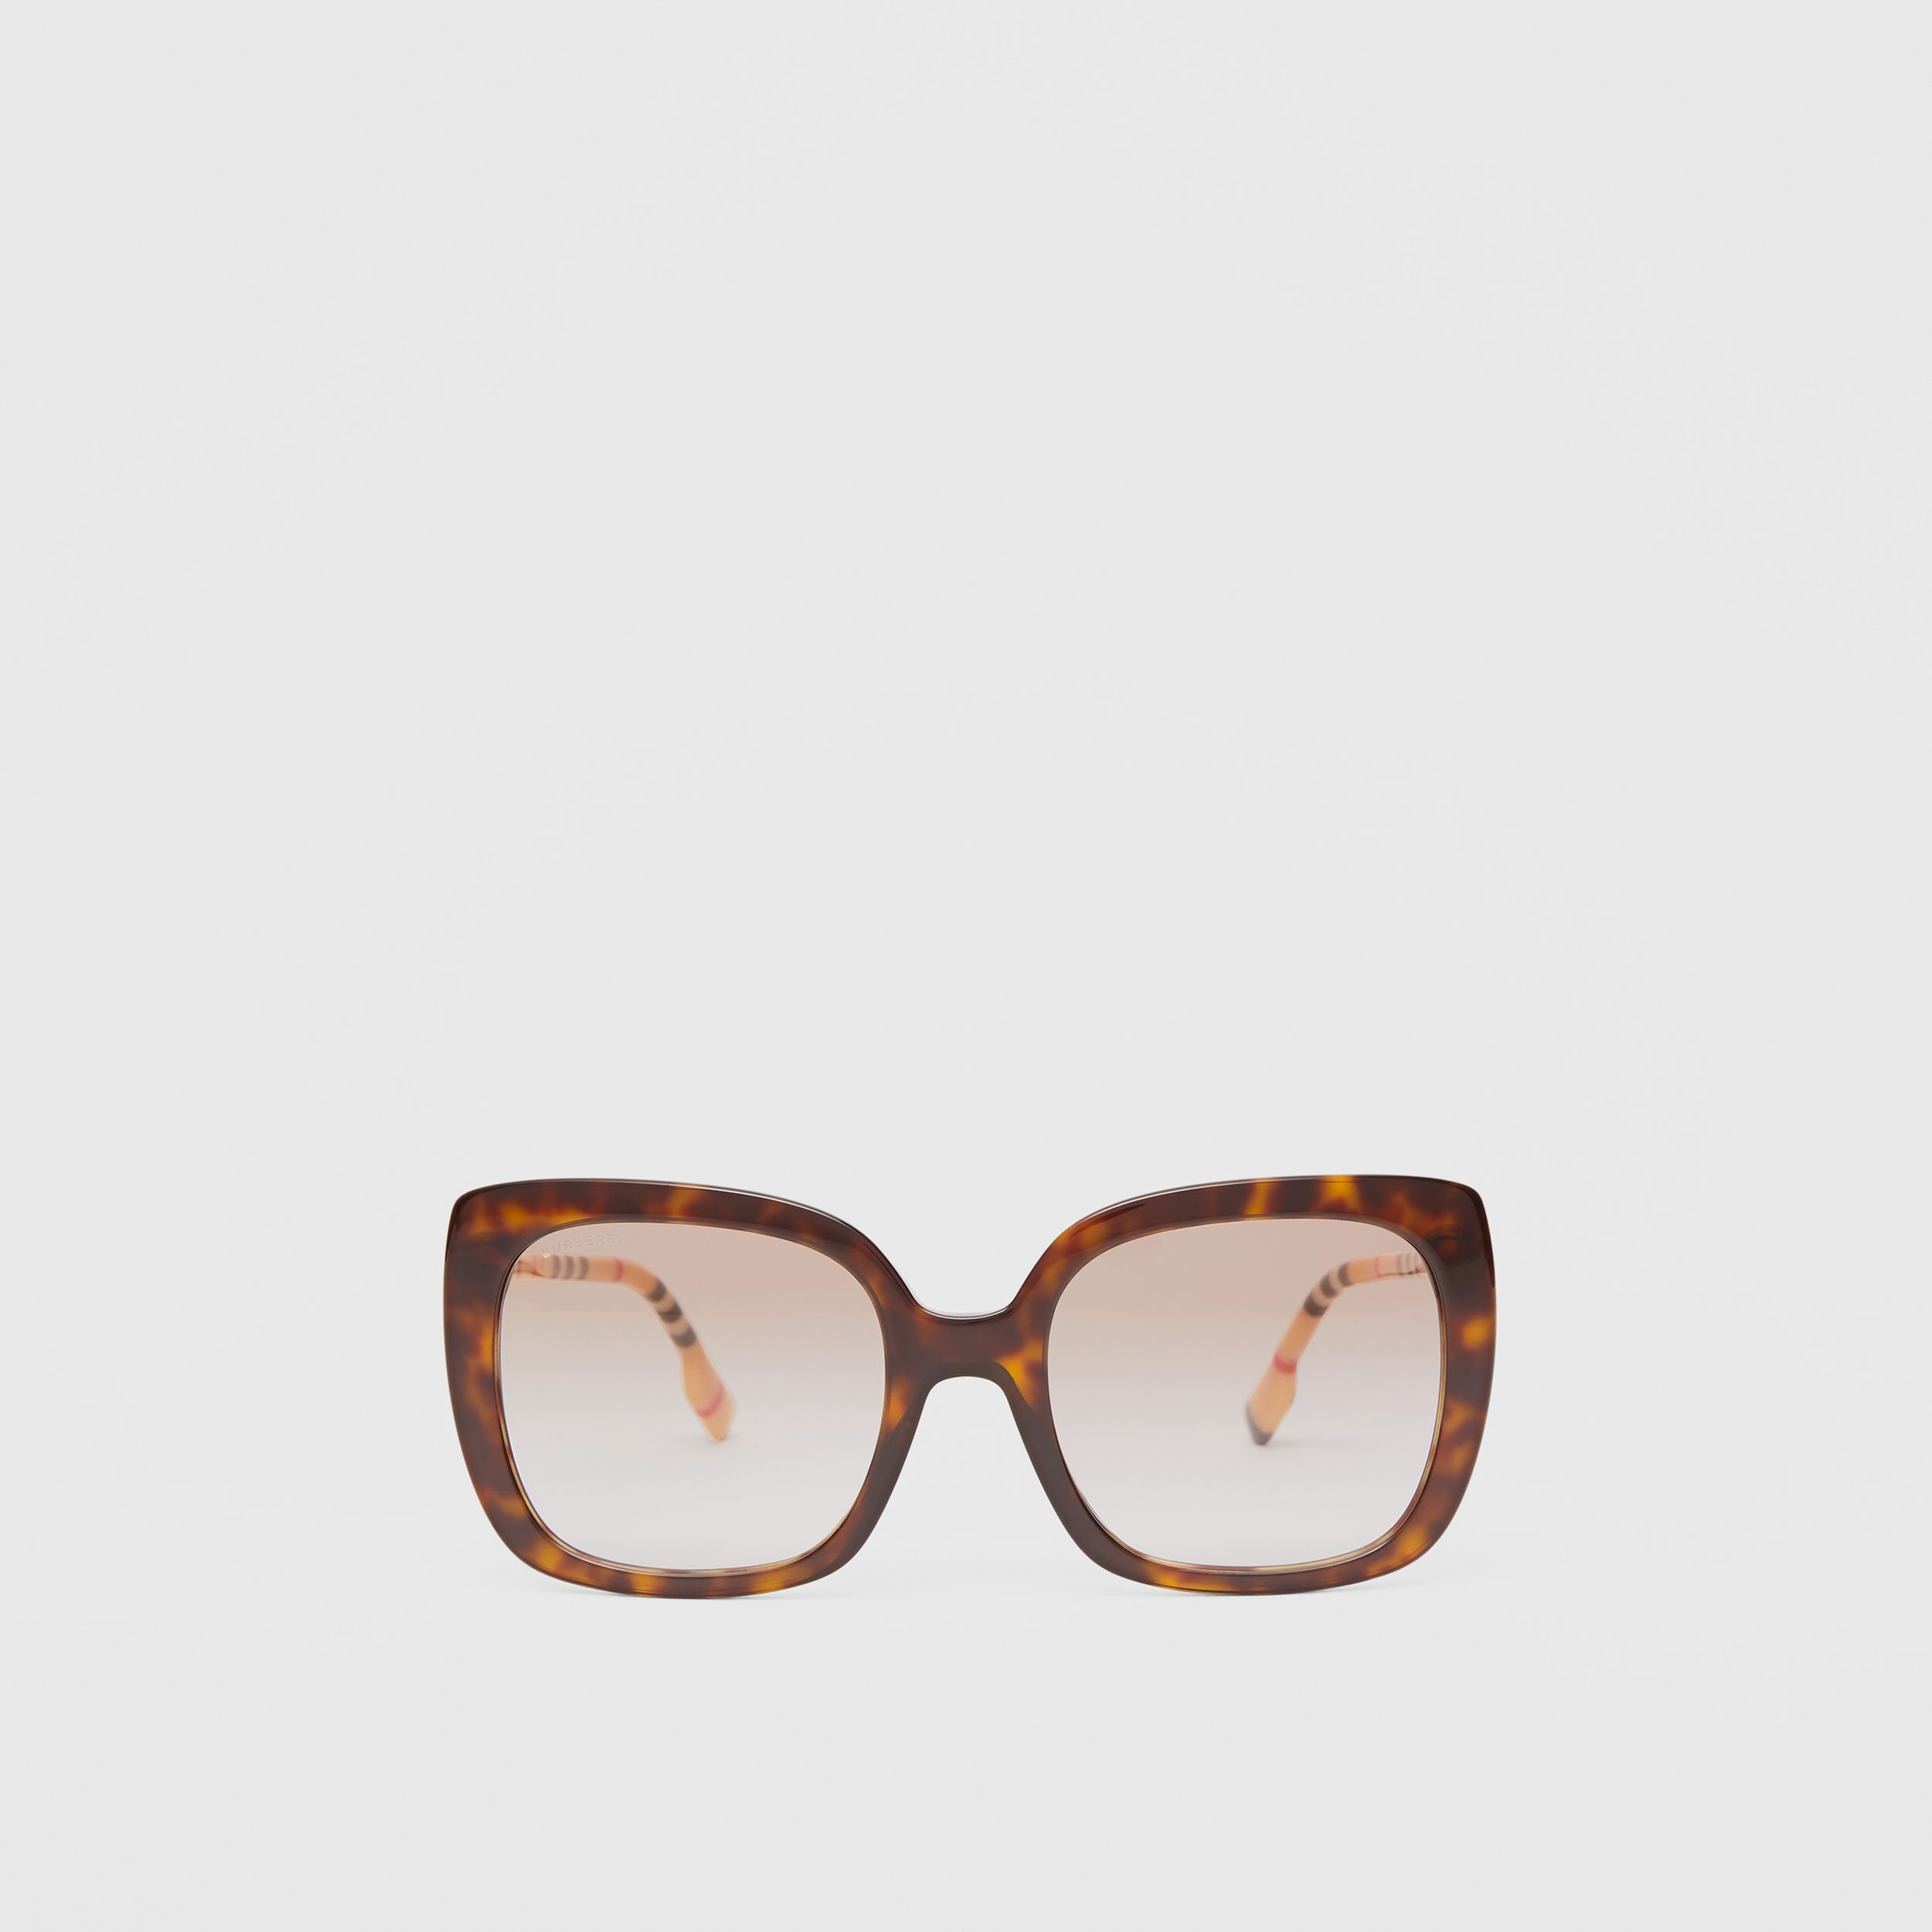 Oversized Square Frame Sunglasses in Tortoiseshell - Women | Burberry - 1